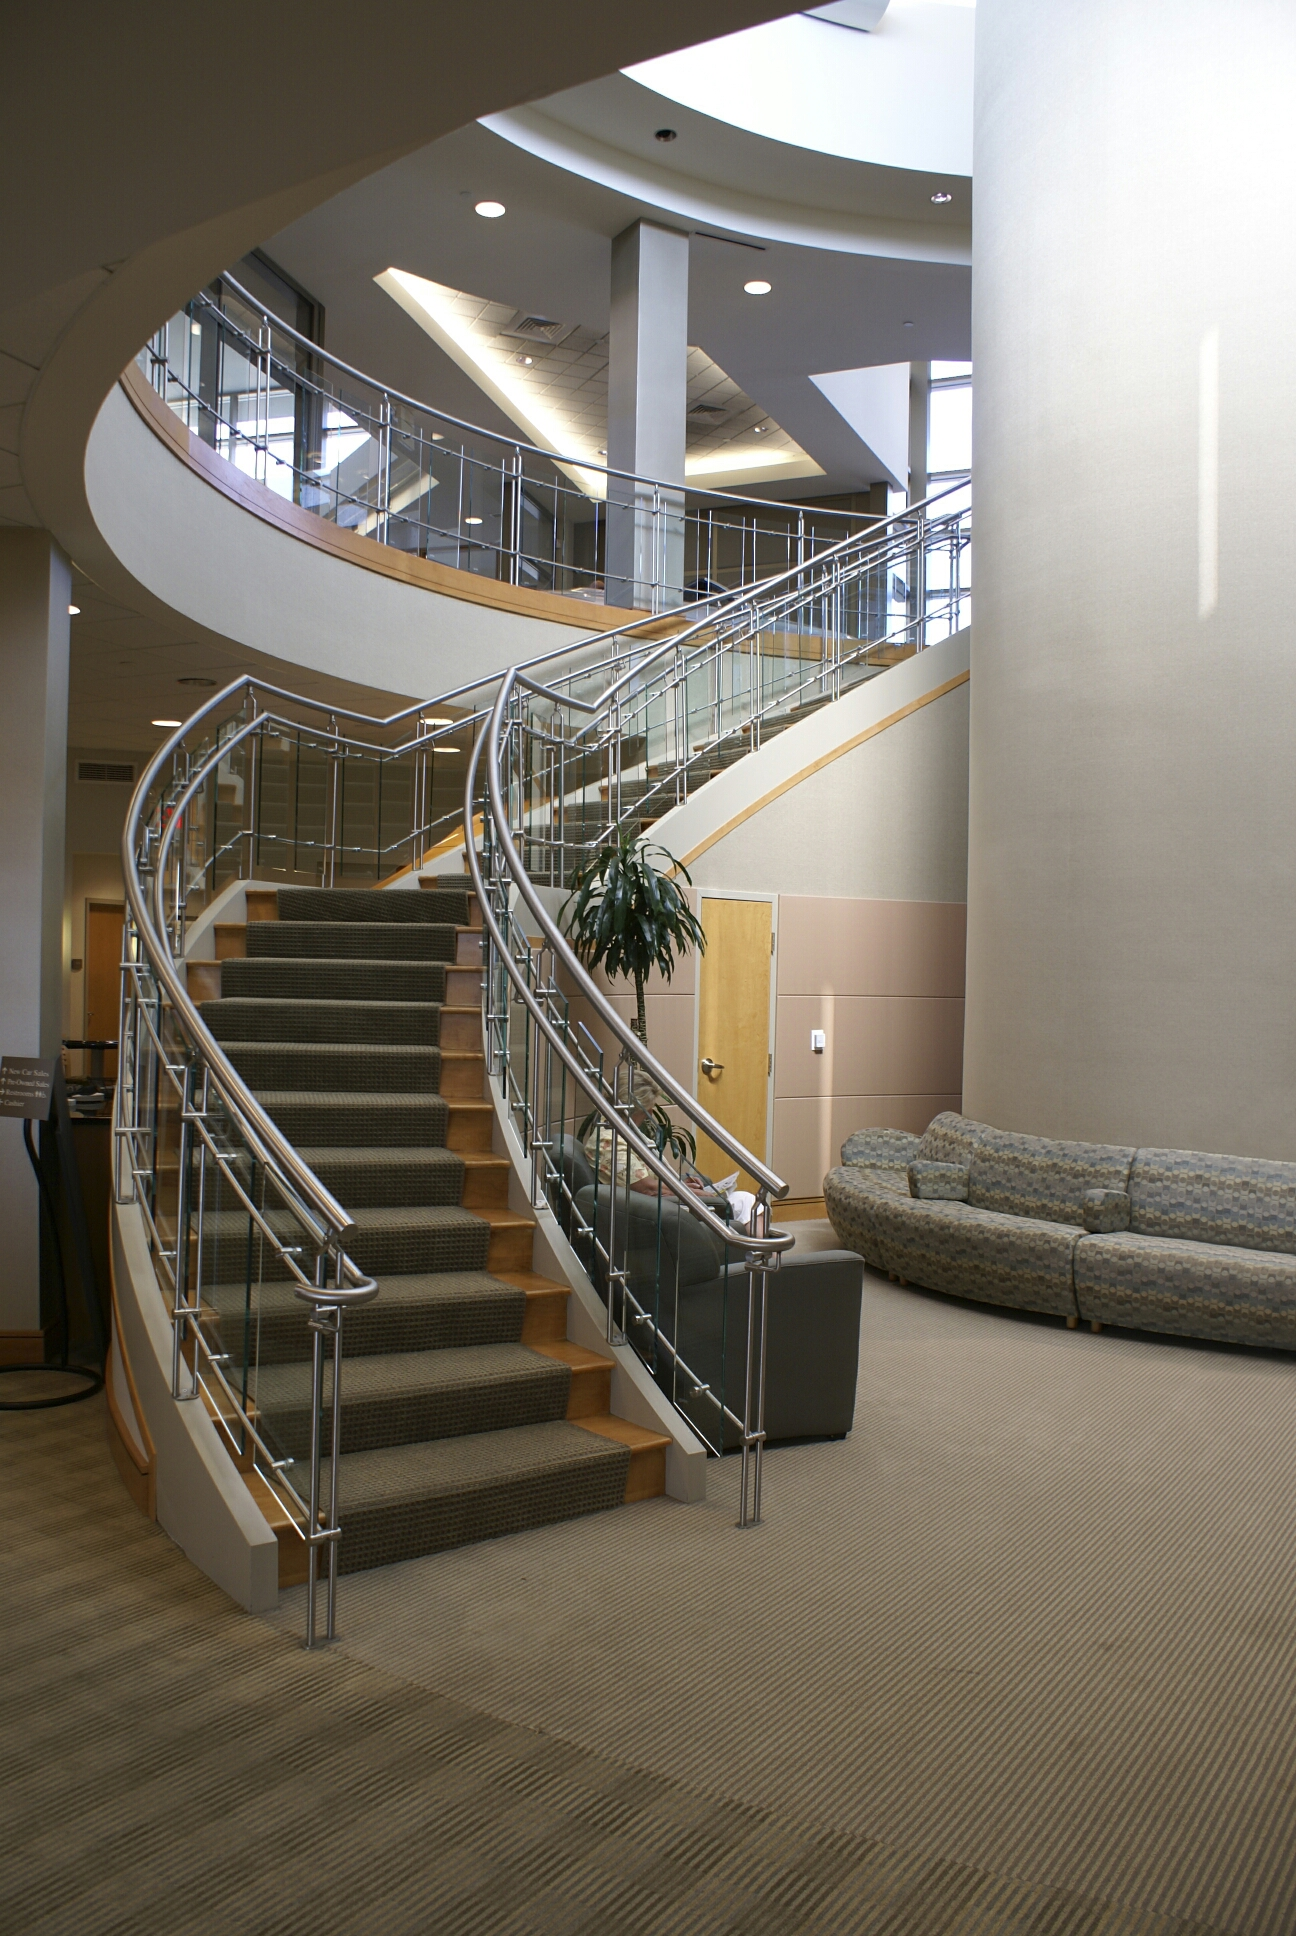 Luxury Ways For Selecting Railings (Image 5 of 10)